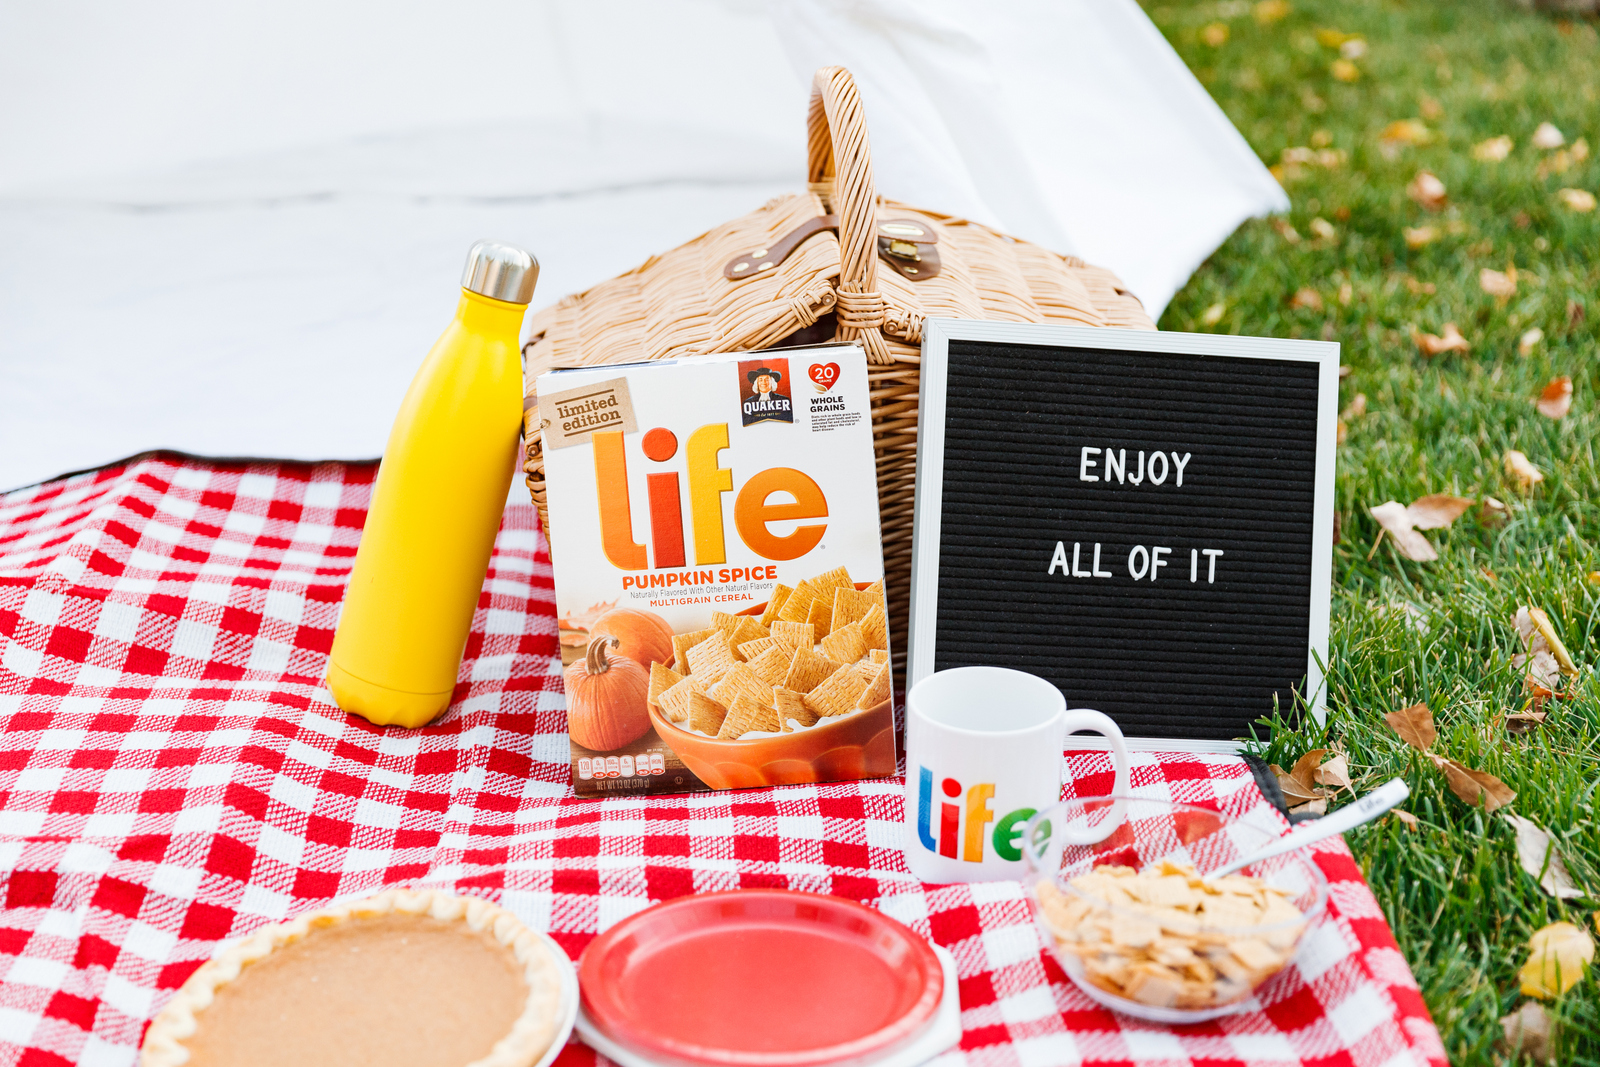 Life Cereal: Enjoy all of it